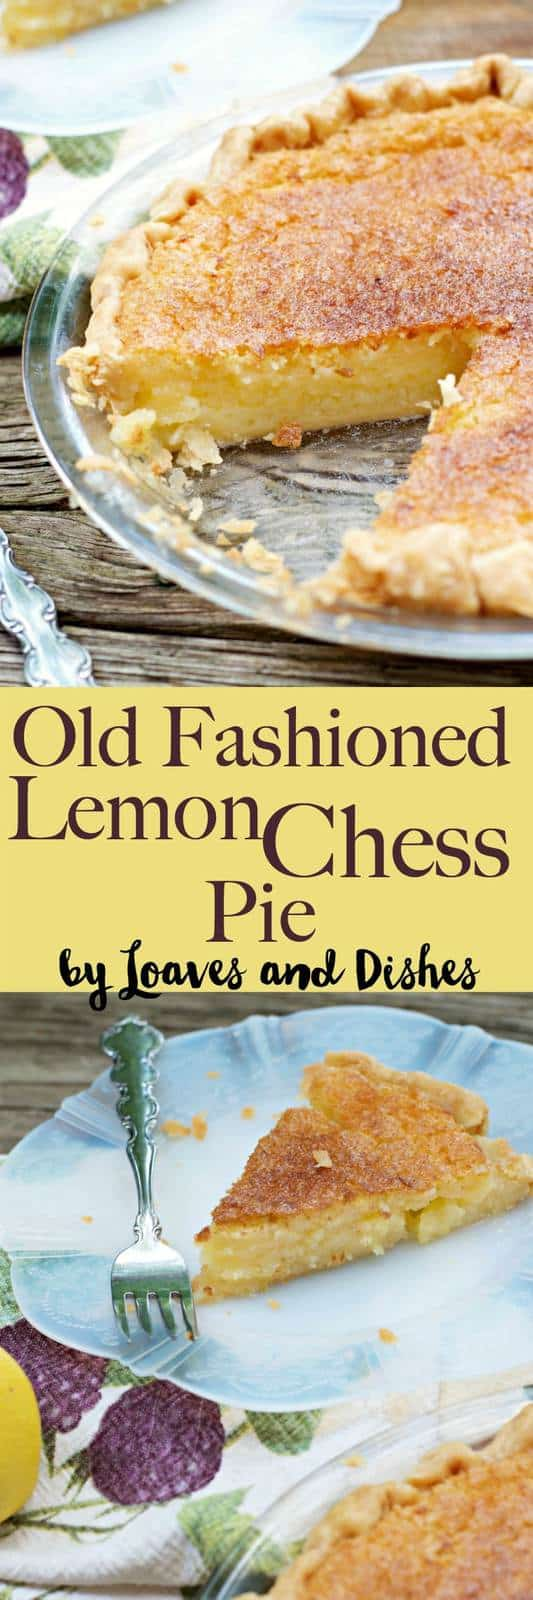 This Old Fashioned Lemon Chess Pie is an old easy southern recipe that is like something your best friend or grandma would make. So simple.